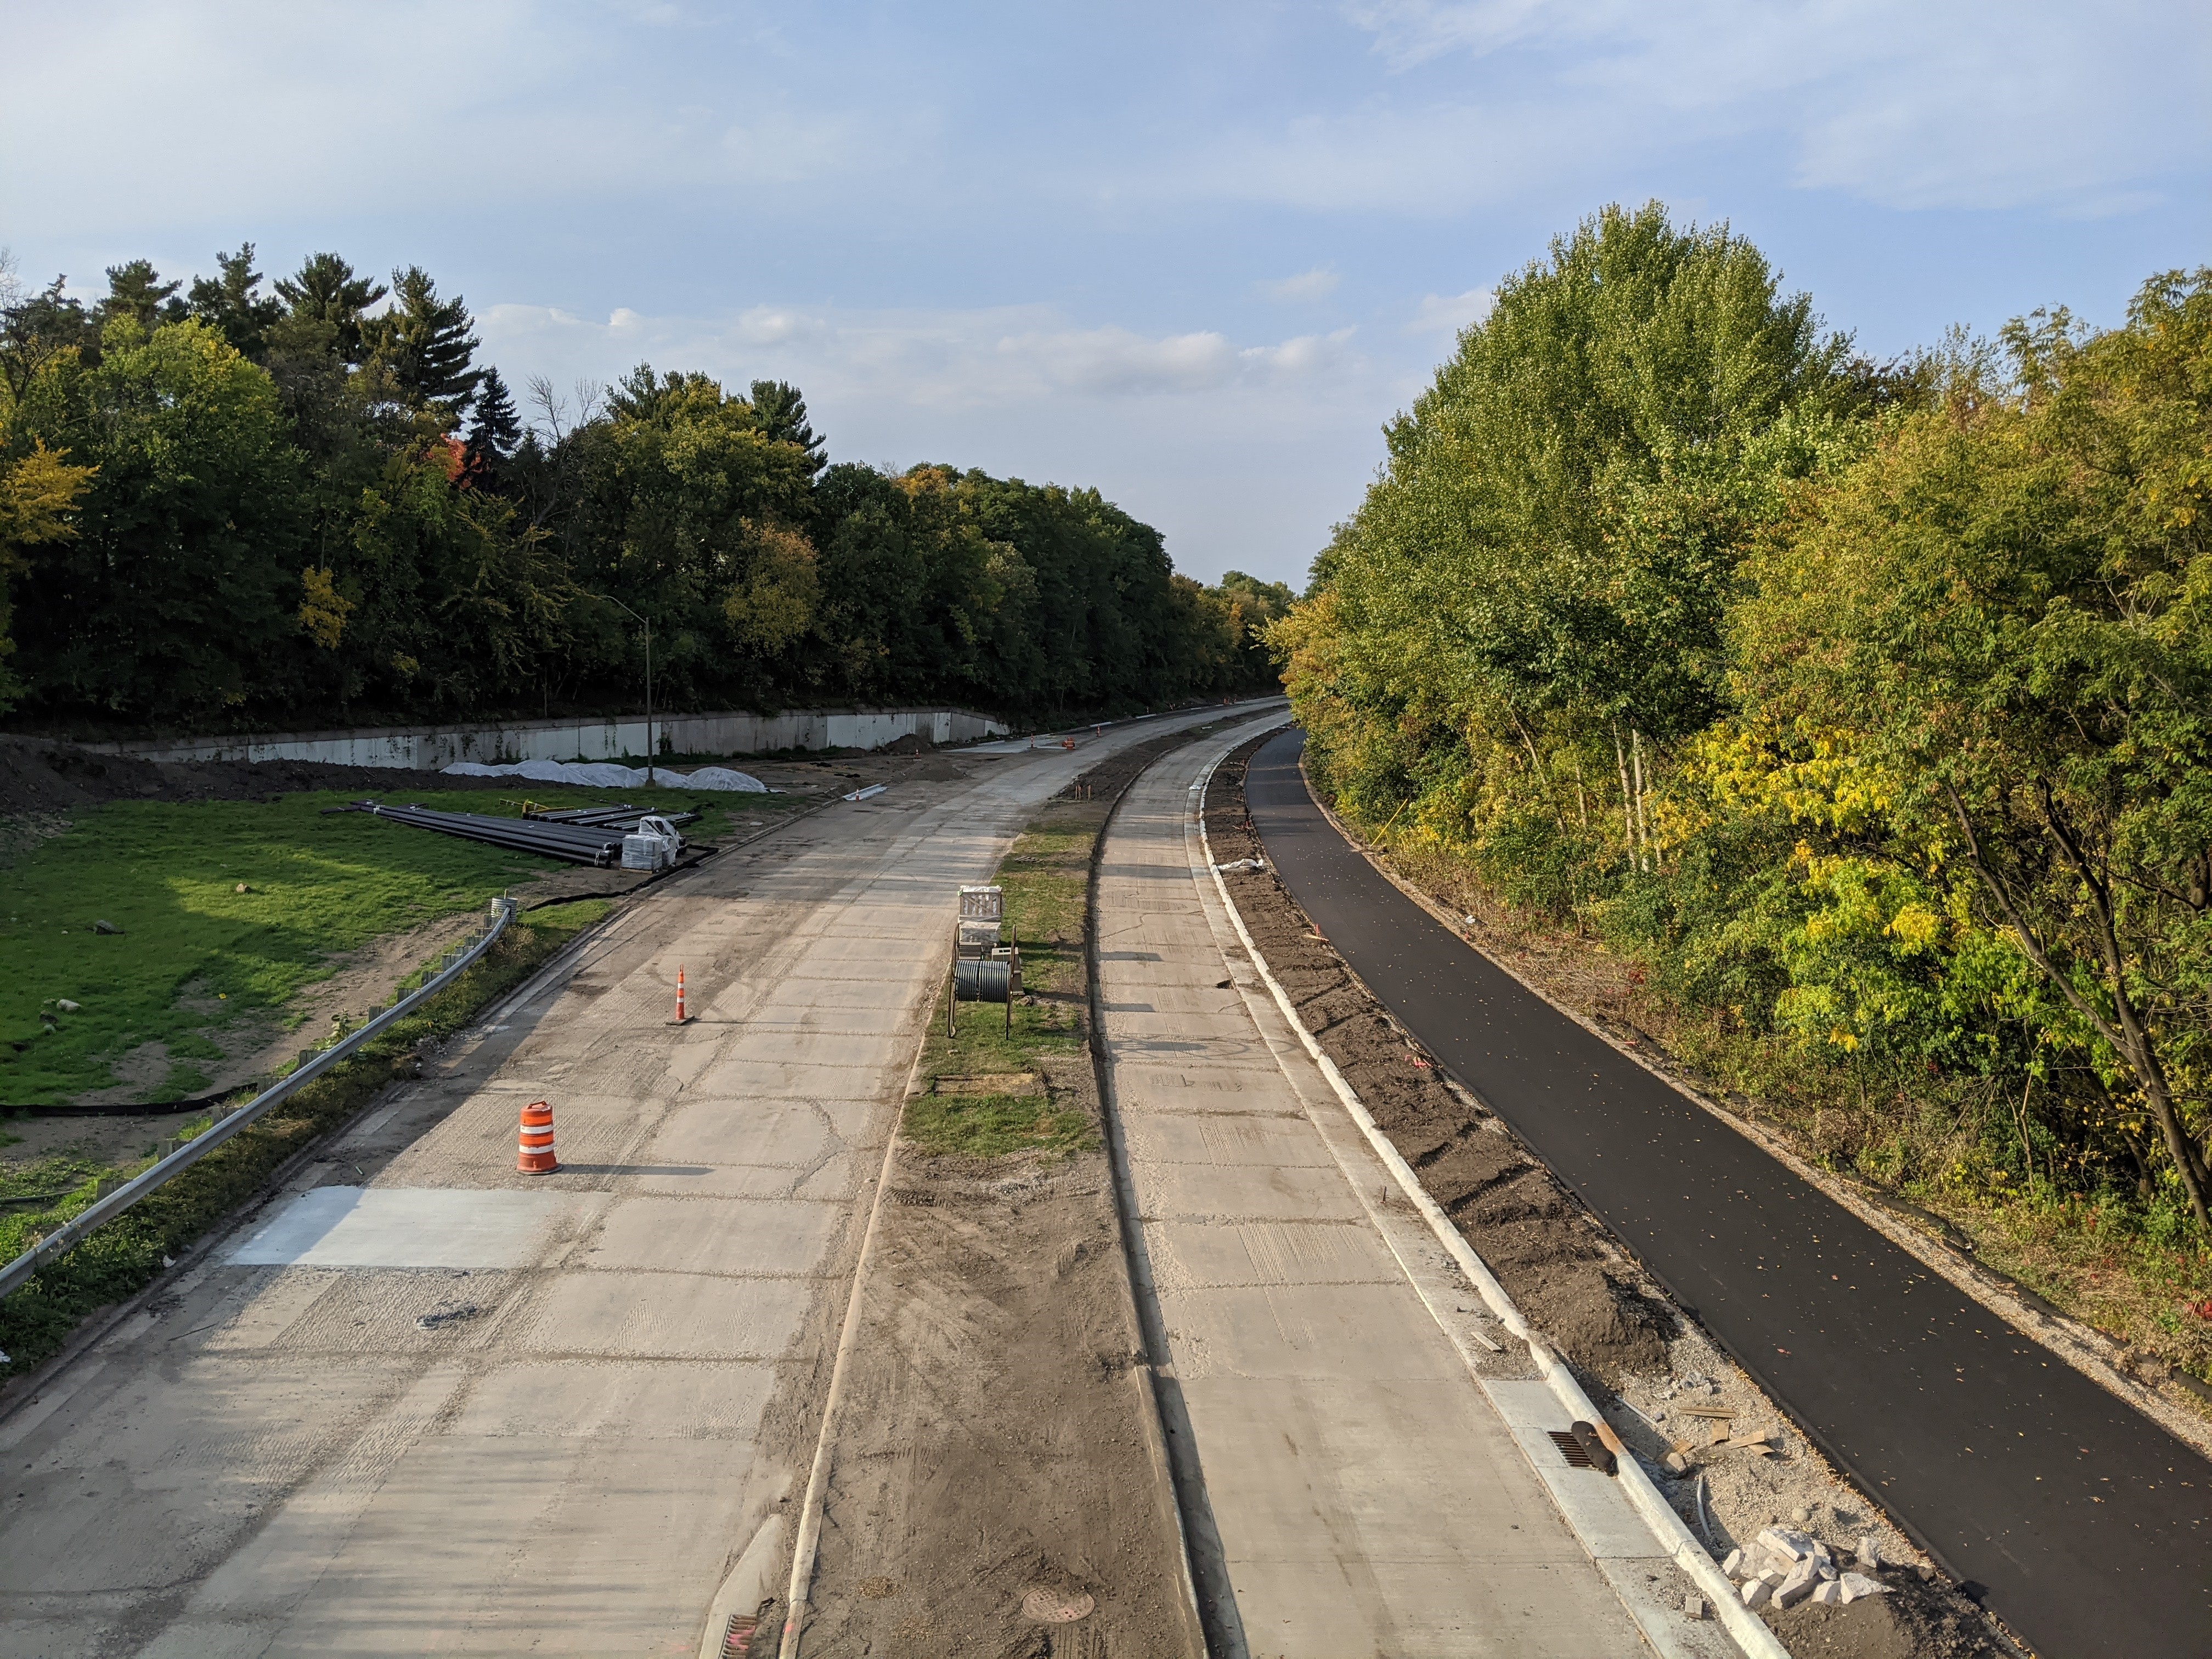 Construction of Ayd Mill Road and the new trail surface showingthenorthbound viewtaken from the St. Clair overpass on 9.25.20.